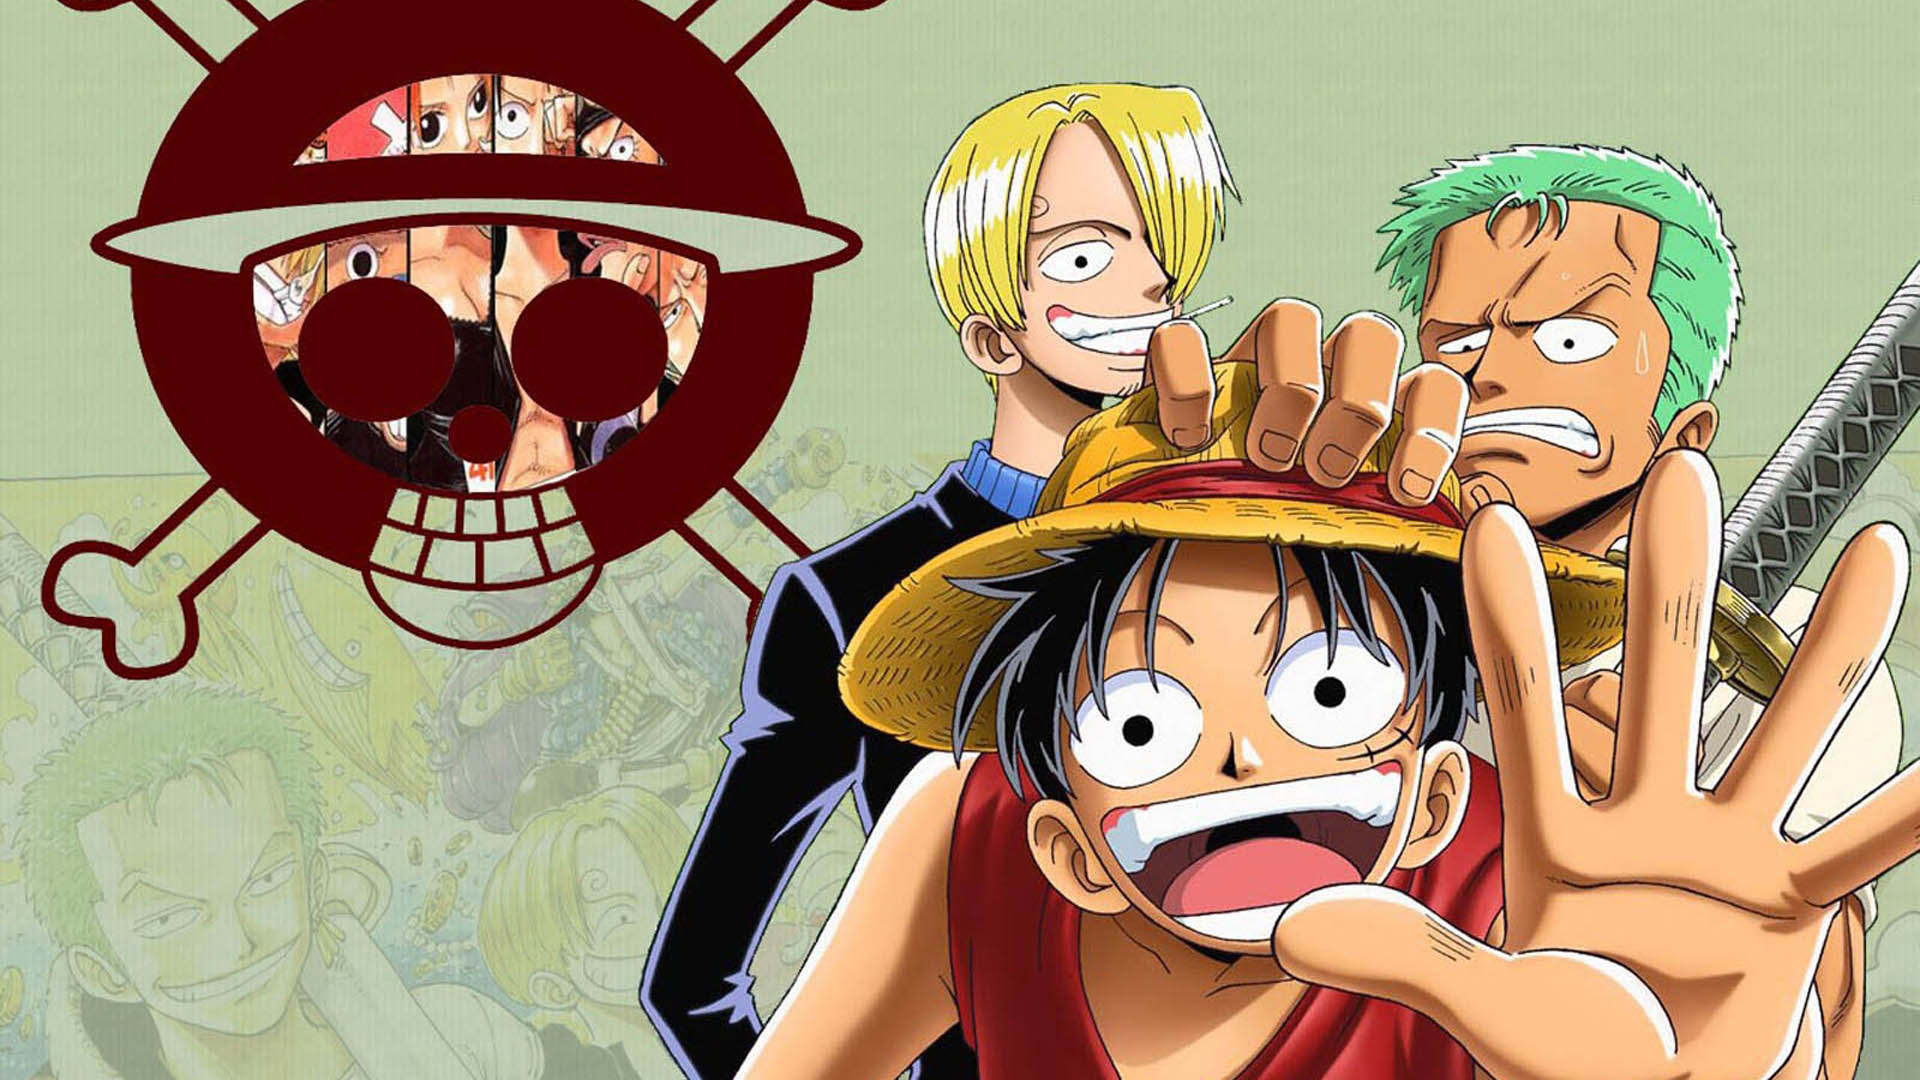 Download Wallpaper Laptop One Piece 1920x1080 Wallpaper Teahub Io